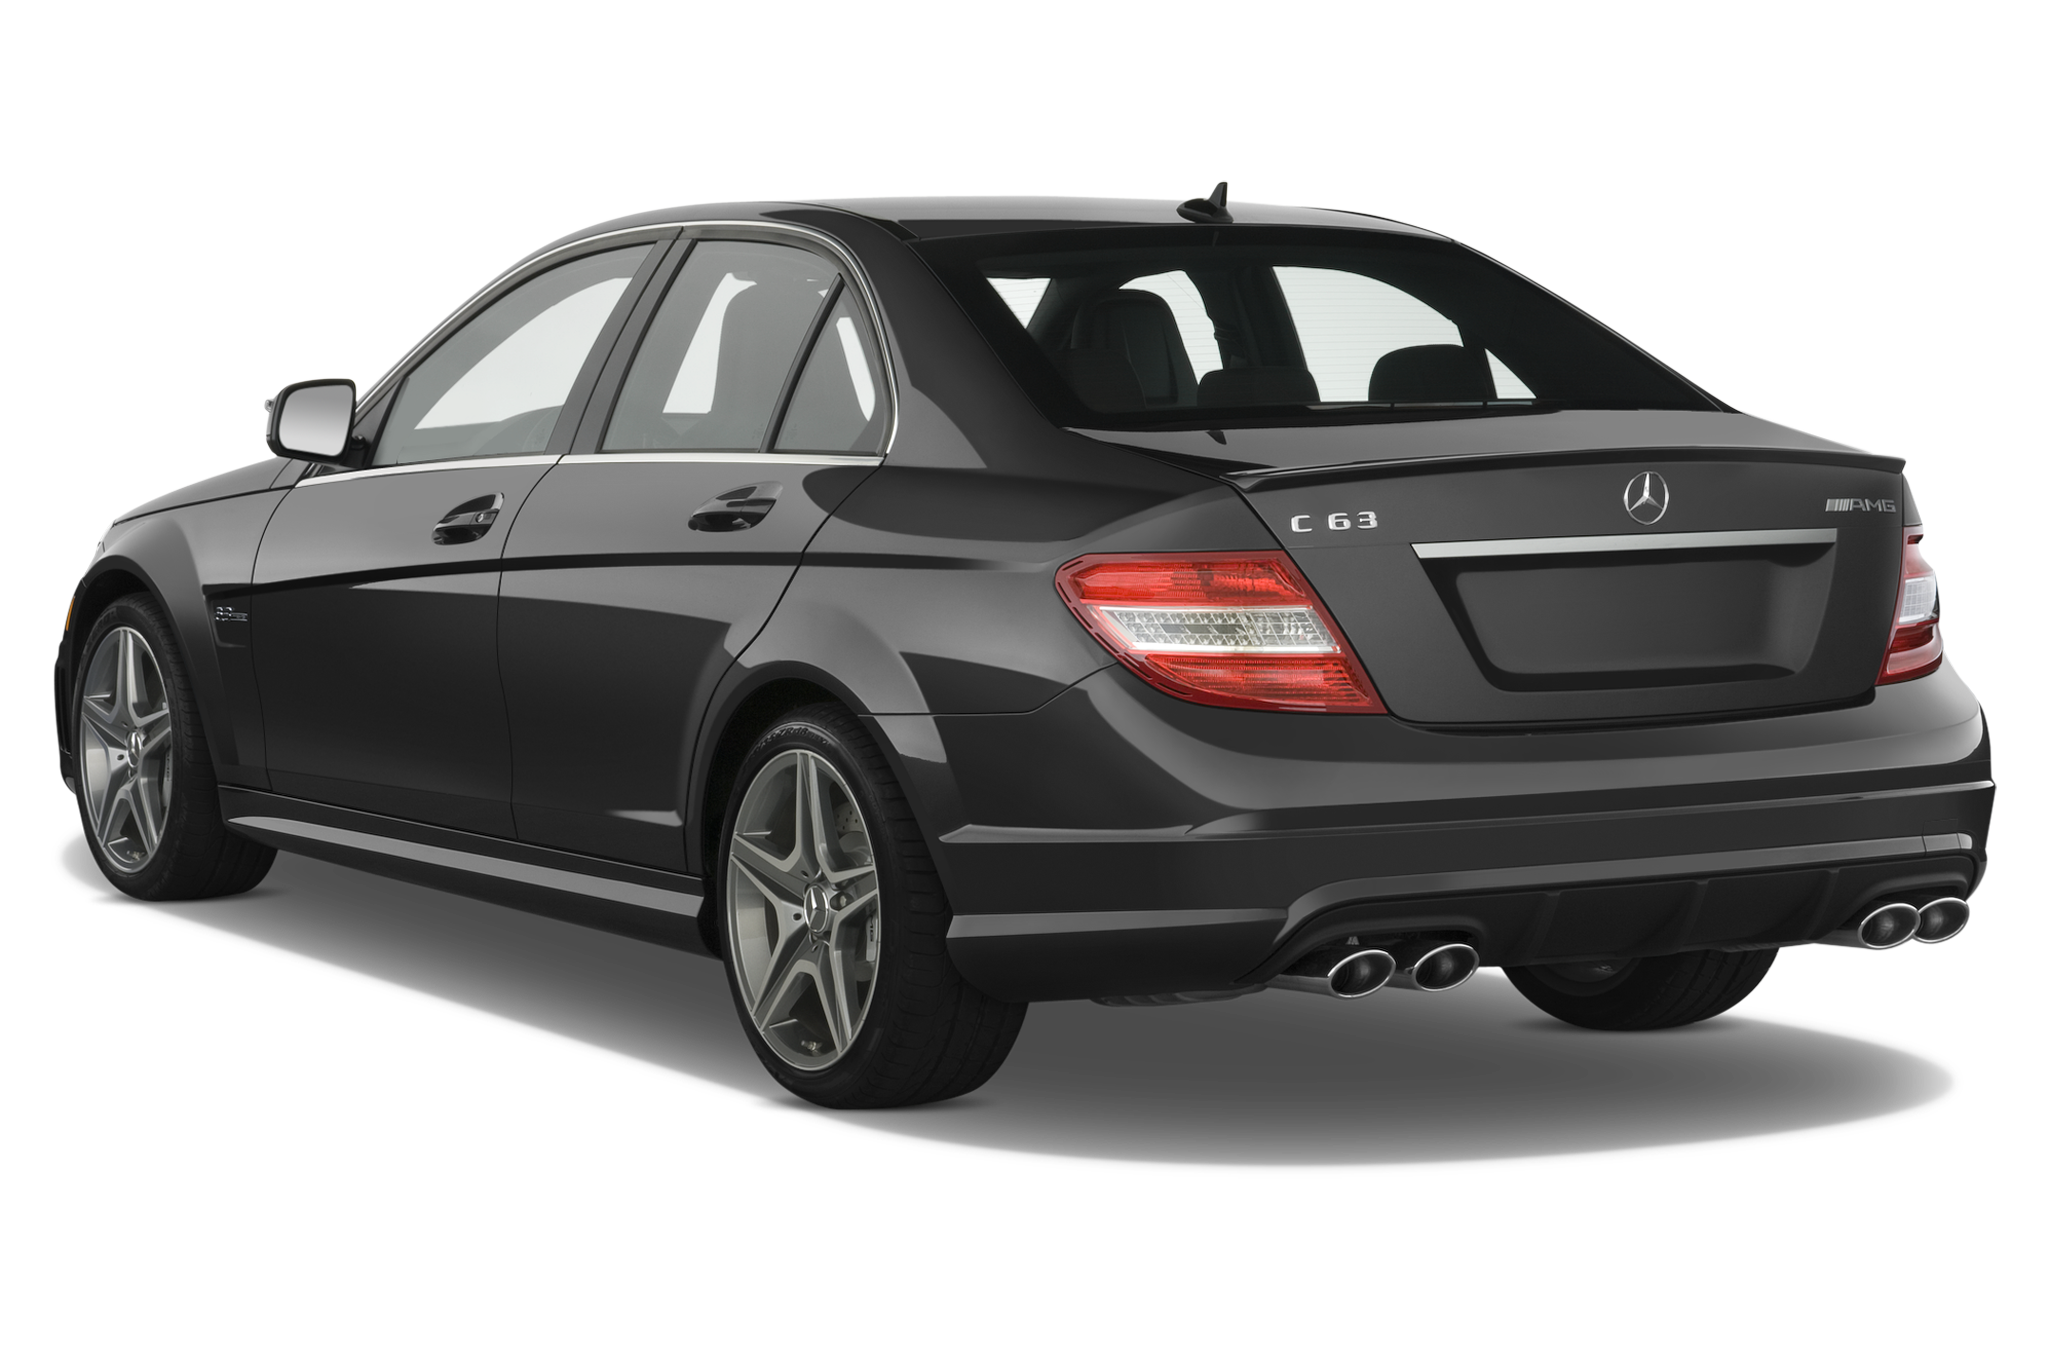 service manual  2012 mercedes benz m class owners manual 2012 nissan versa sedan service manual 2012 nissan versa sedan service manual